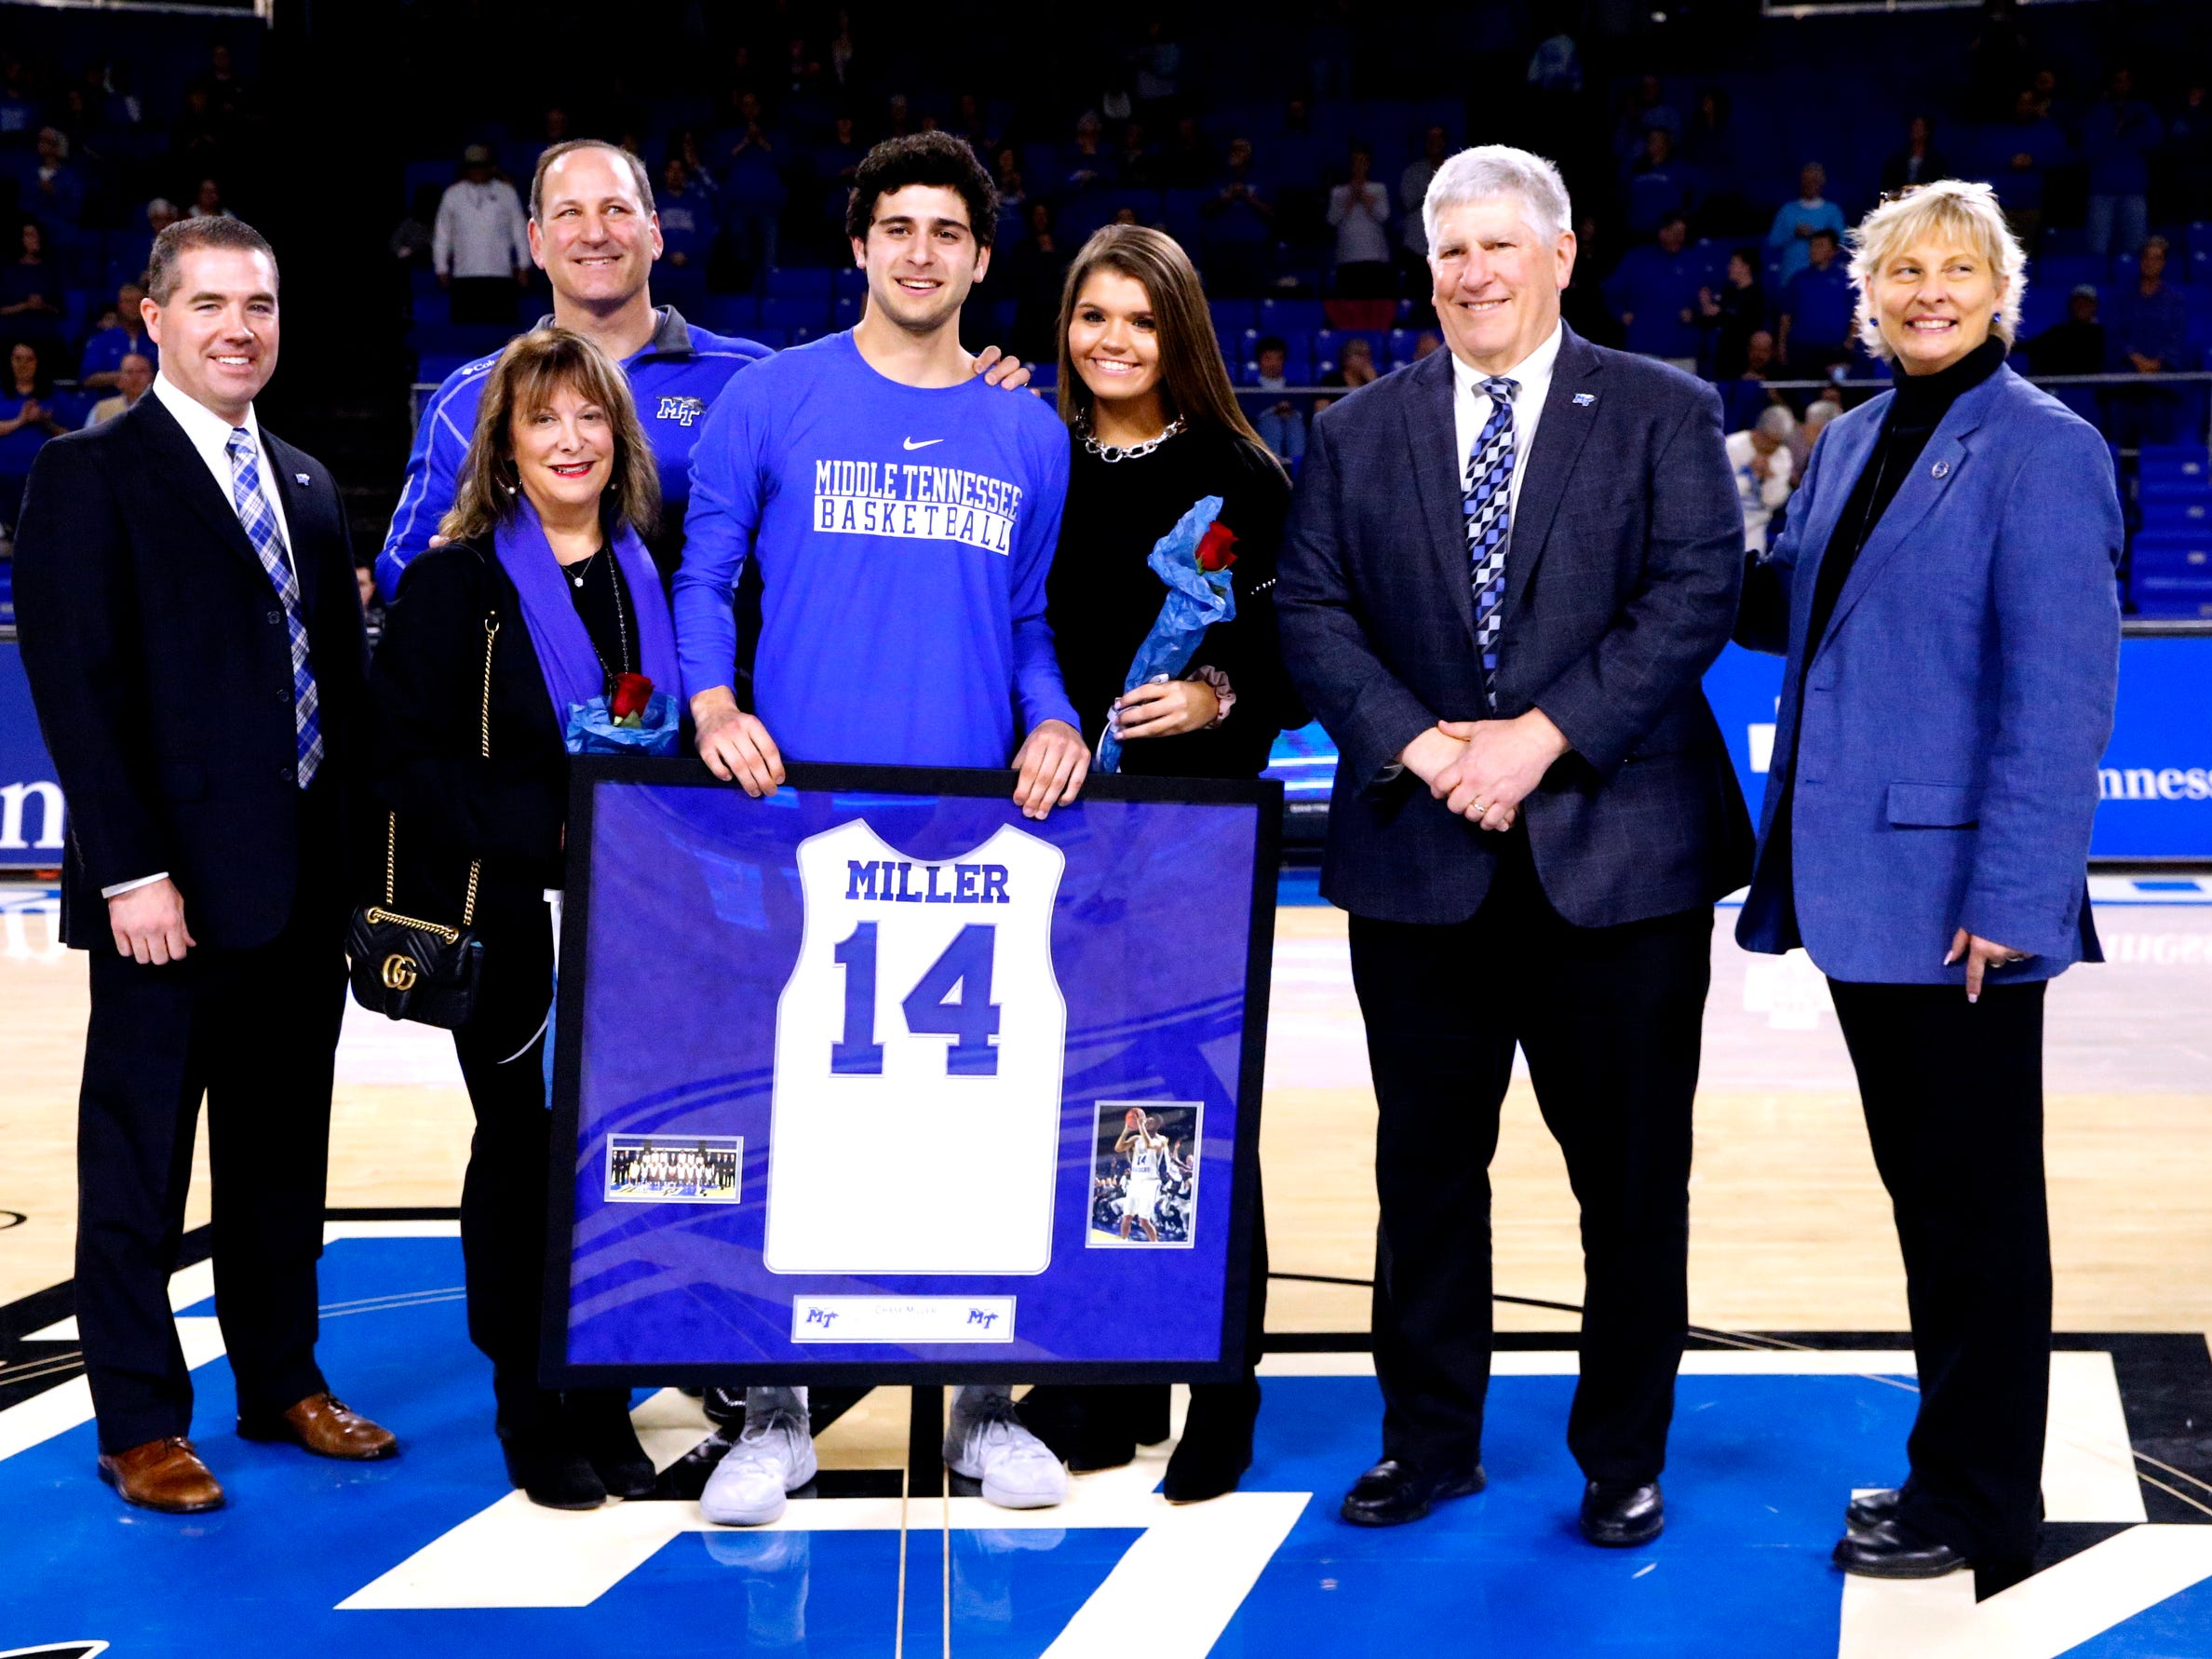 MTSU guard Chase Miller (14) was honored on senior night before the game against UTEP on Saturday, March 9, 2019, at Murphy Center in Murfreesboro, Tenn.